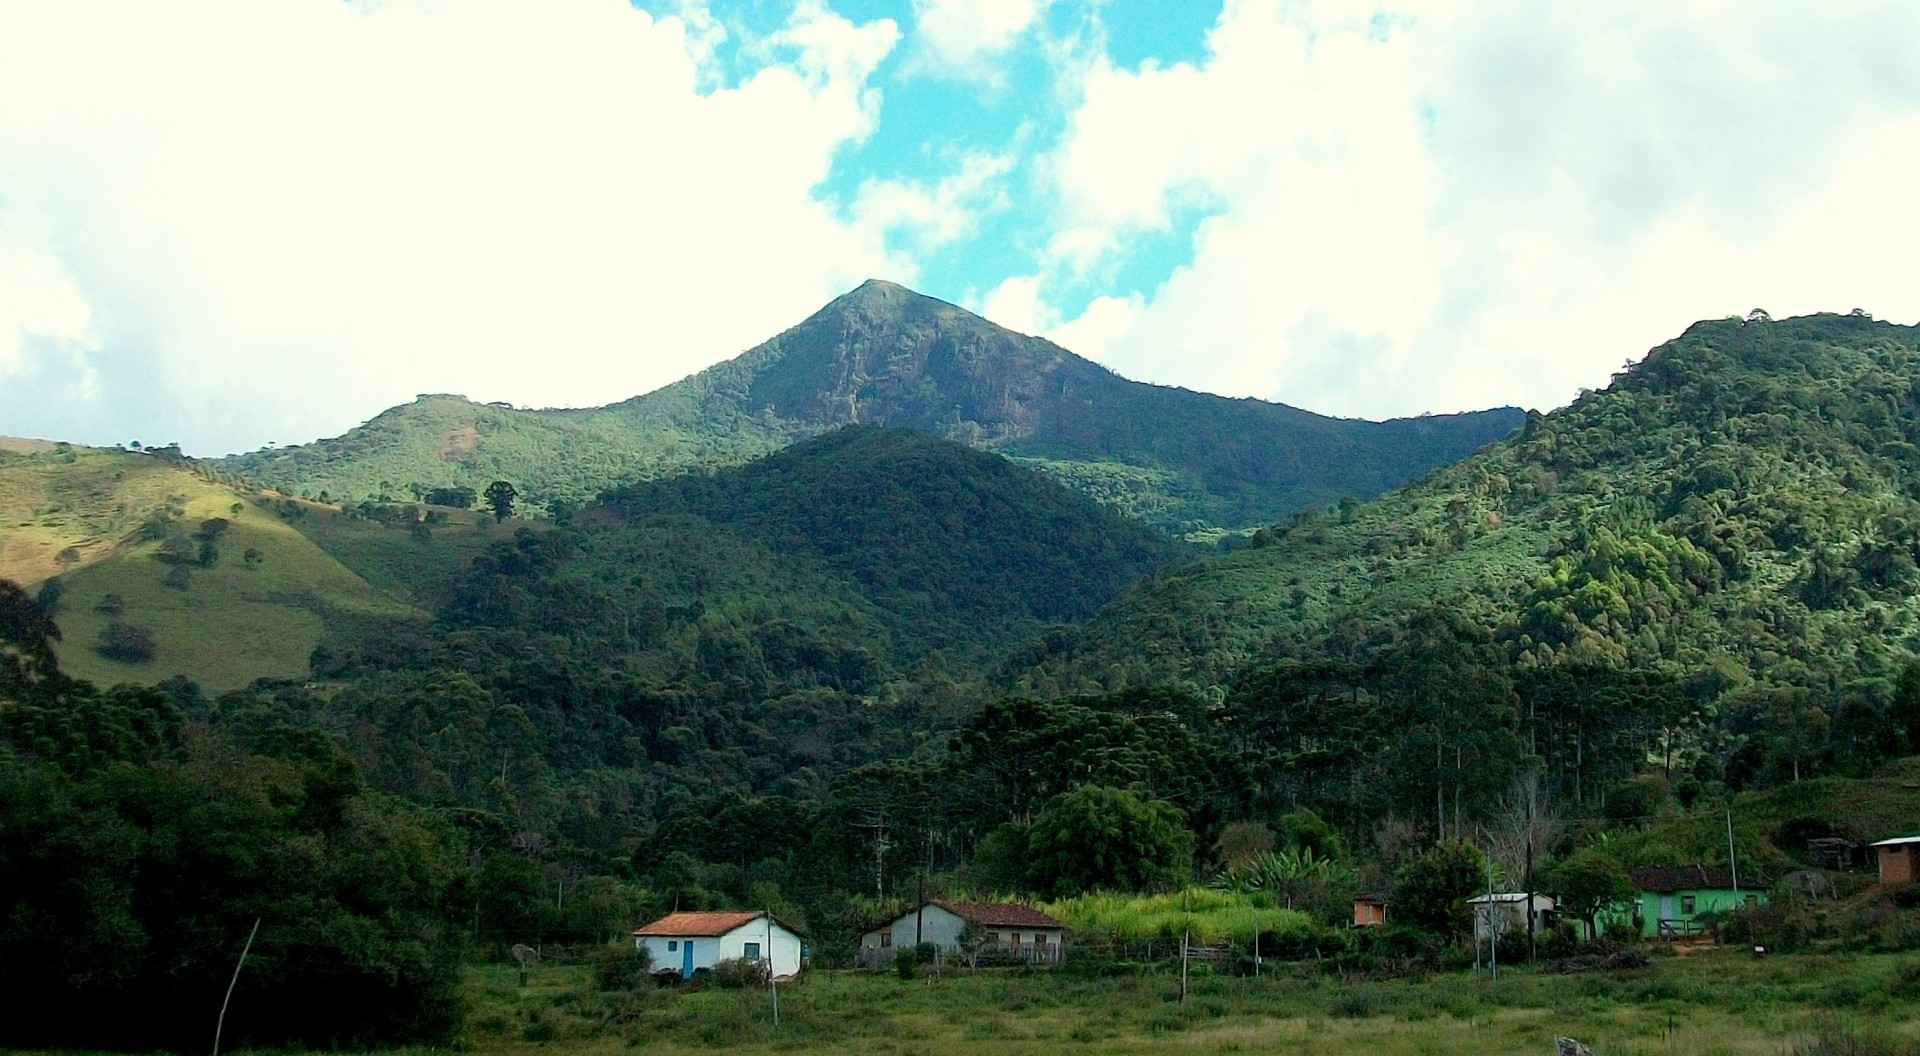 Pedra do Gavião